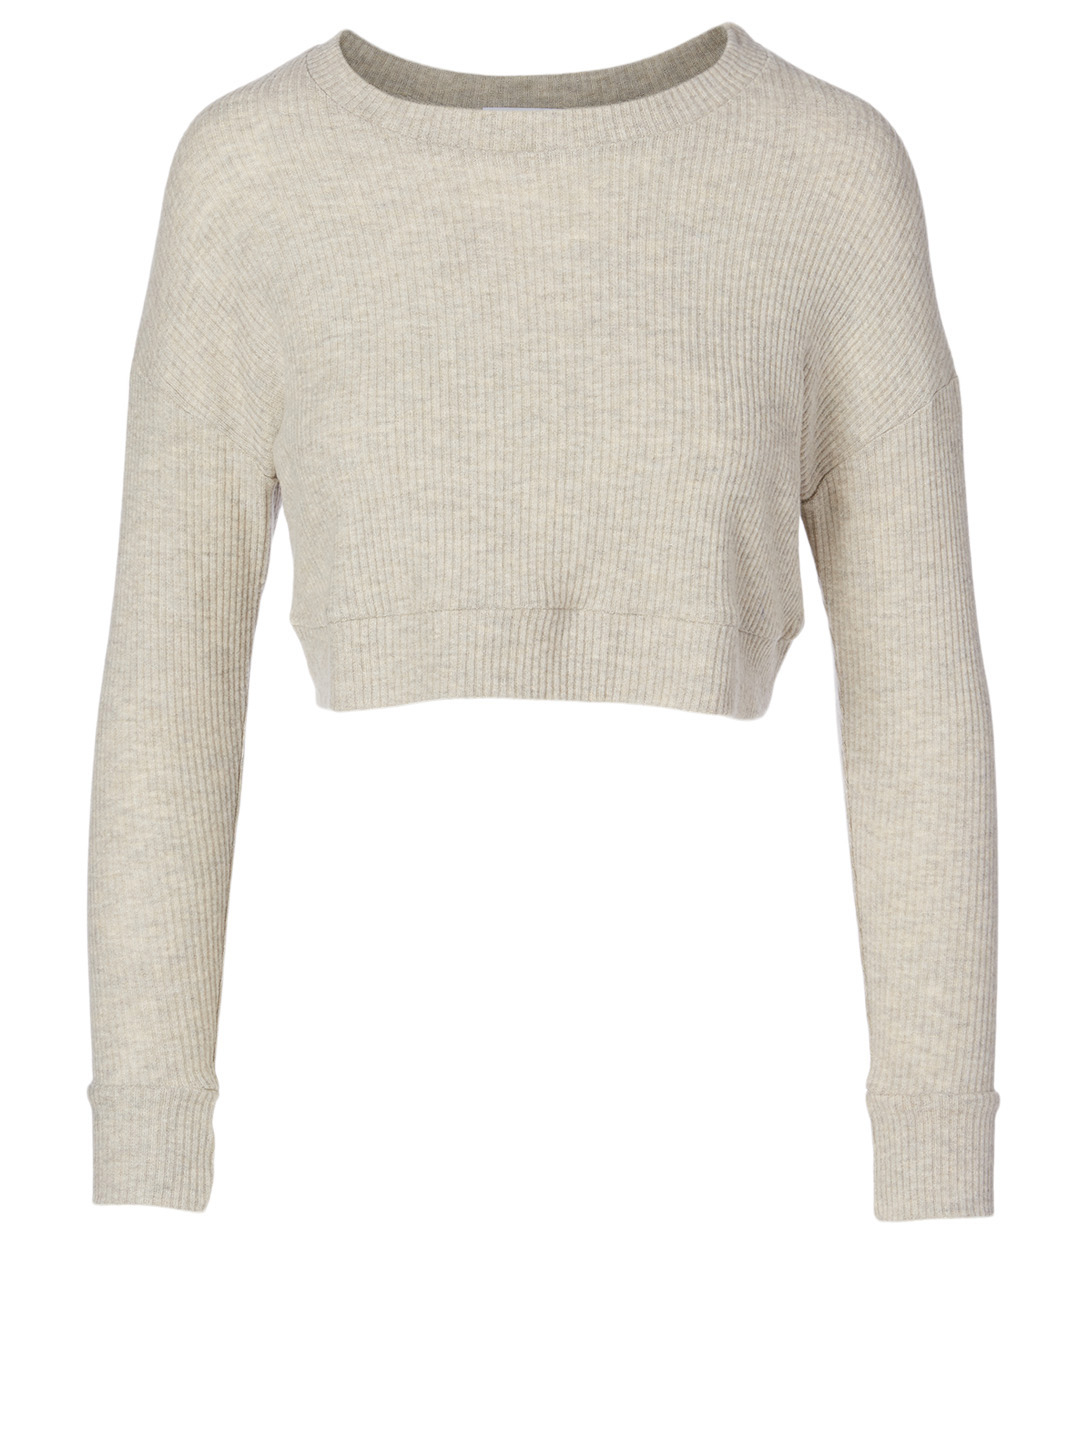 BEYOND YOGA In Line Super Cropped Pullover Sweater Women's Neutral